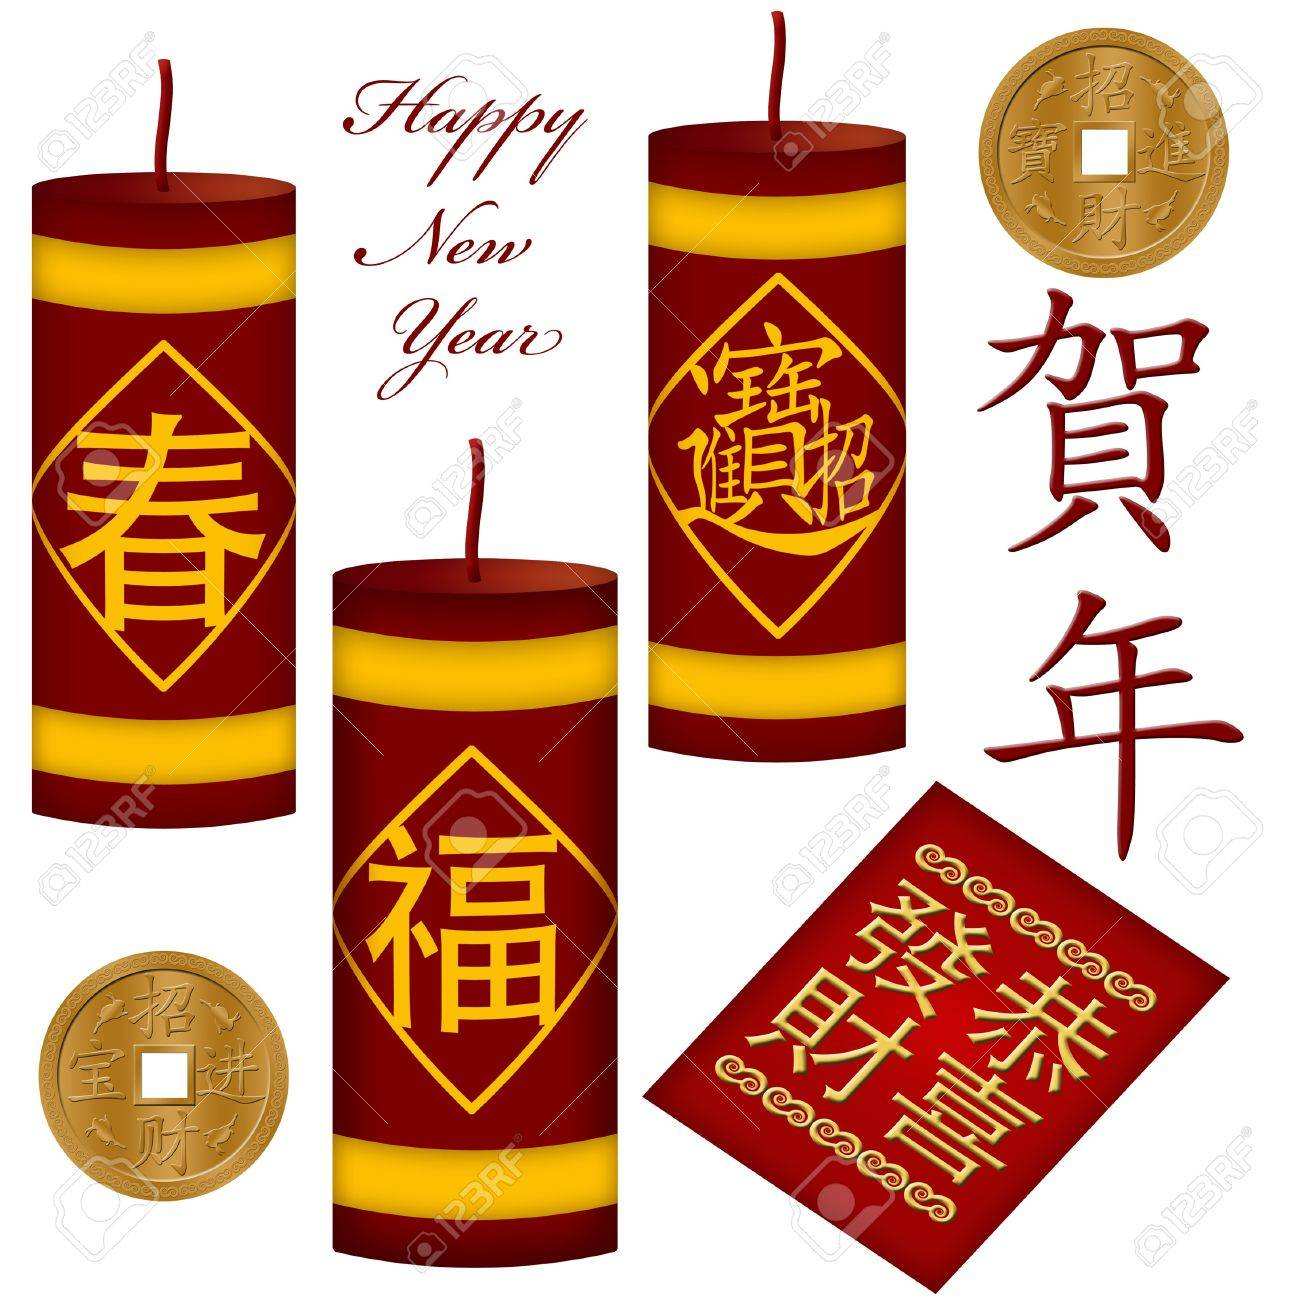 Chinese New Year Firecrackers with Red Money Packet Illustration Stock Illustration - 8639616